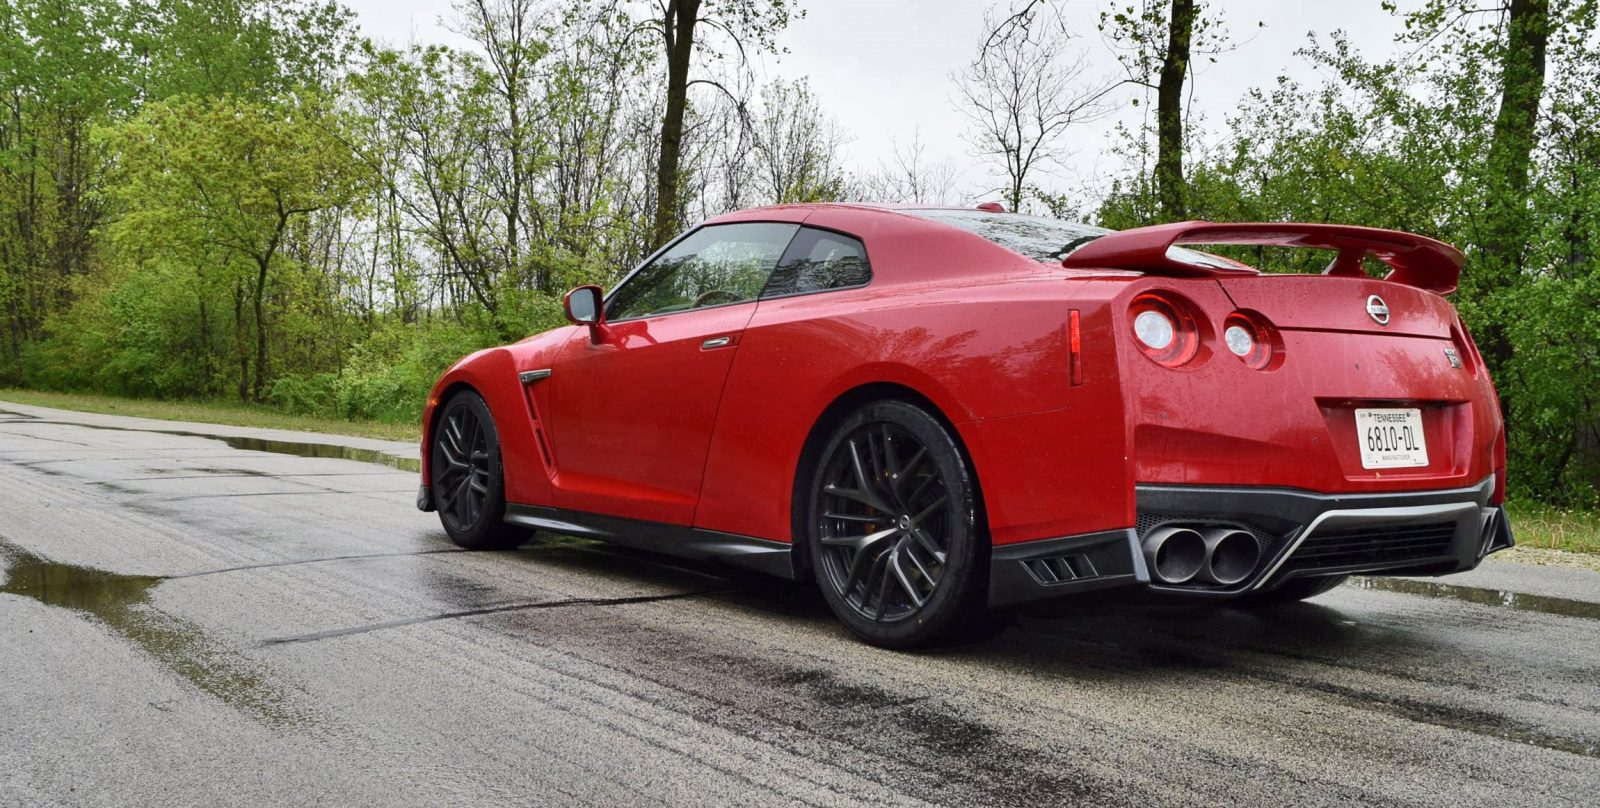 2017 nissan gt r premium first drive review w video. Black Bedroom Furniture Sets. Home Design Ideas